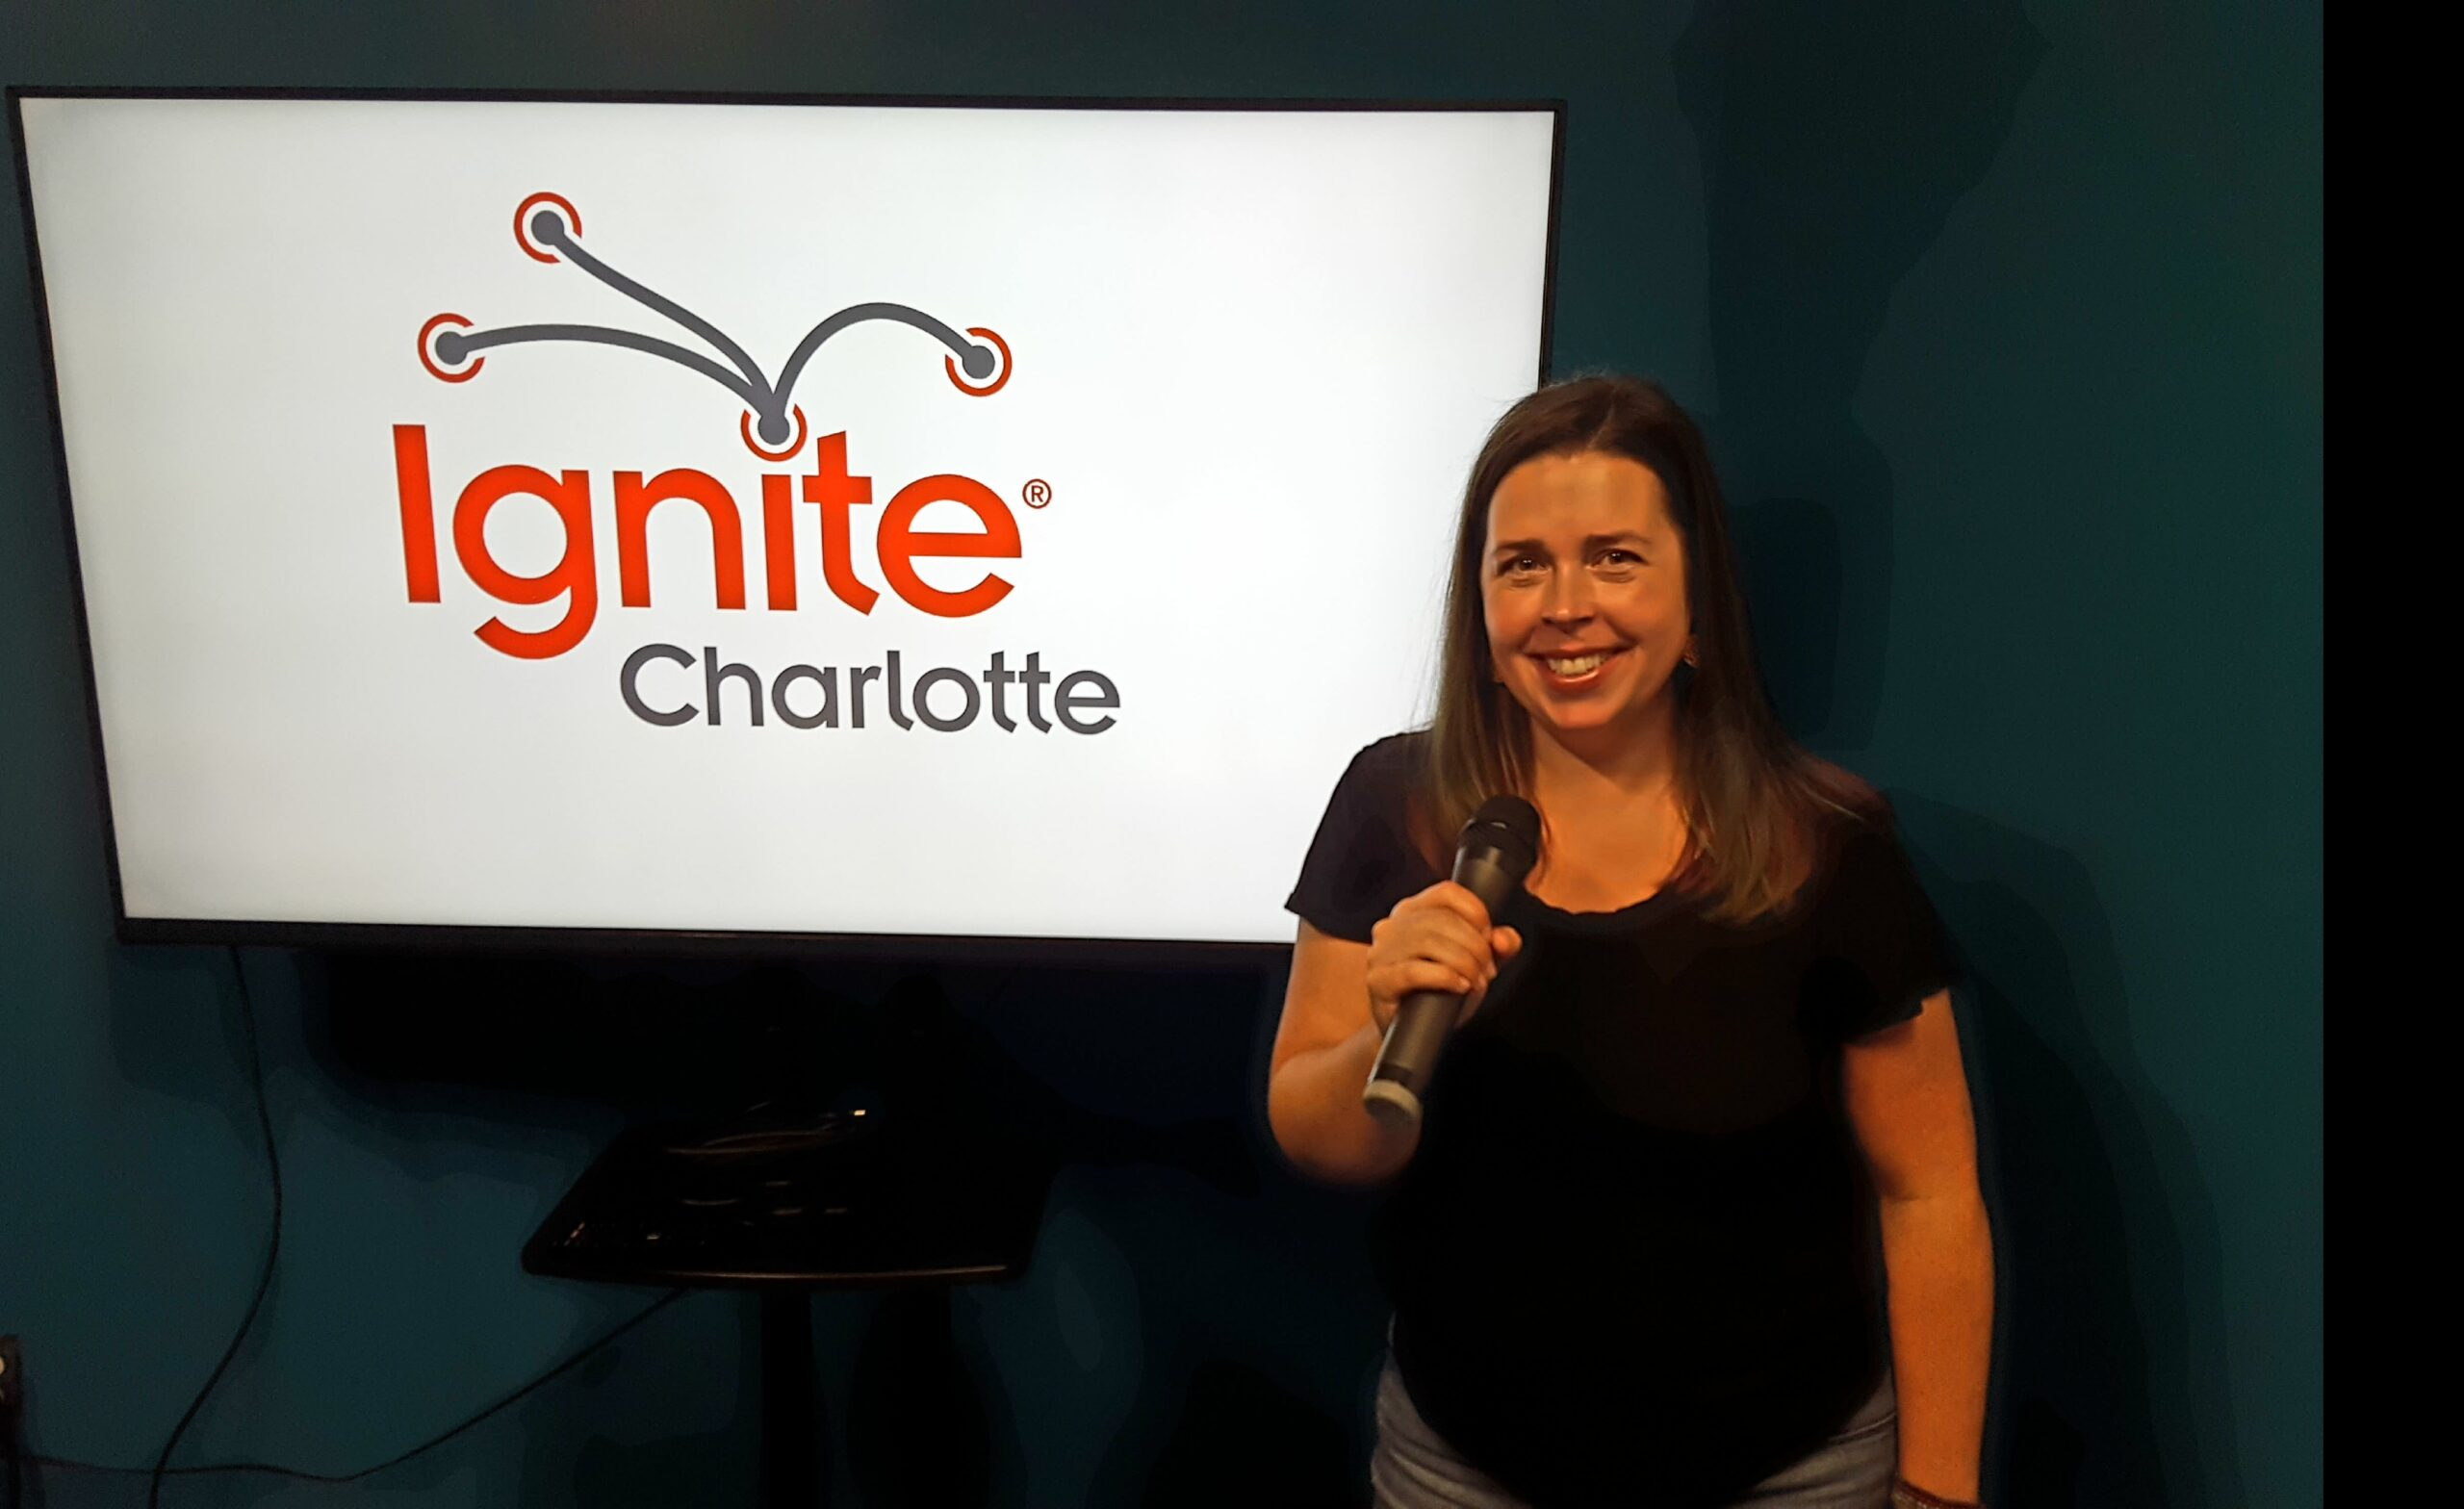 Nicole stands in front of an Ignite Charlotte sign. She is smiling and holding a microphone.